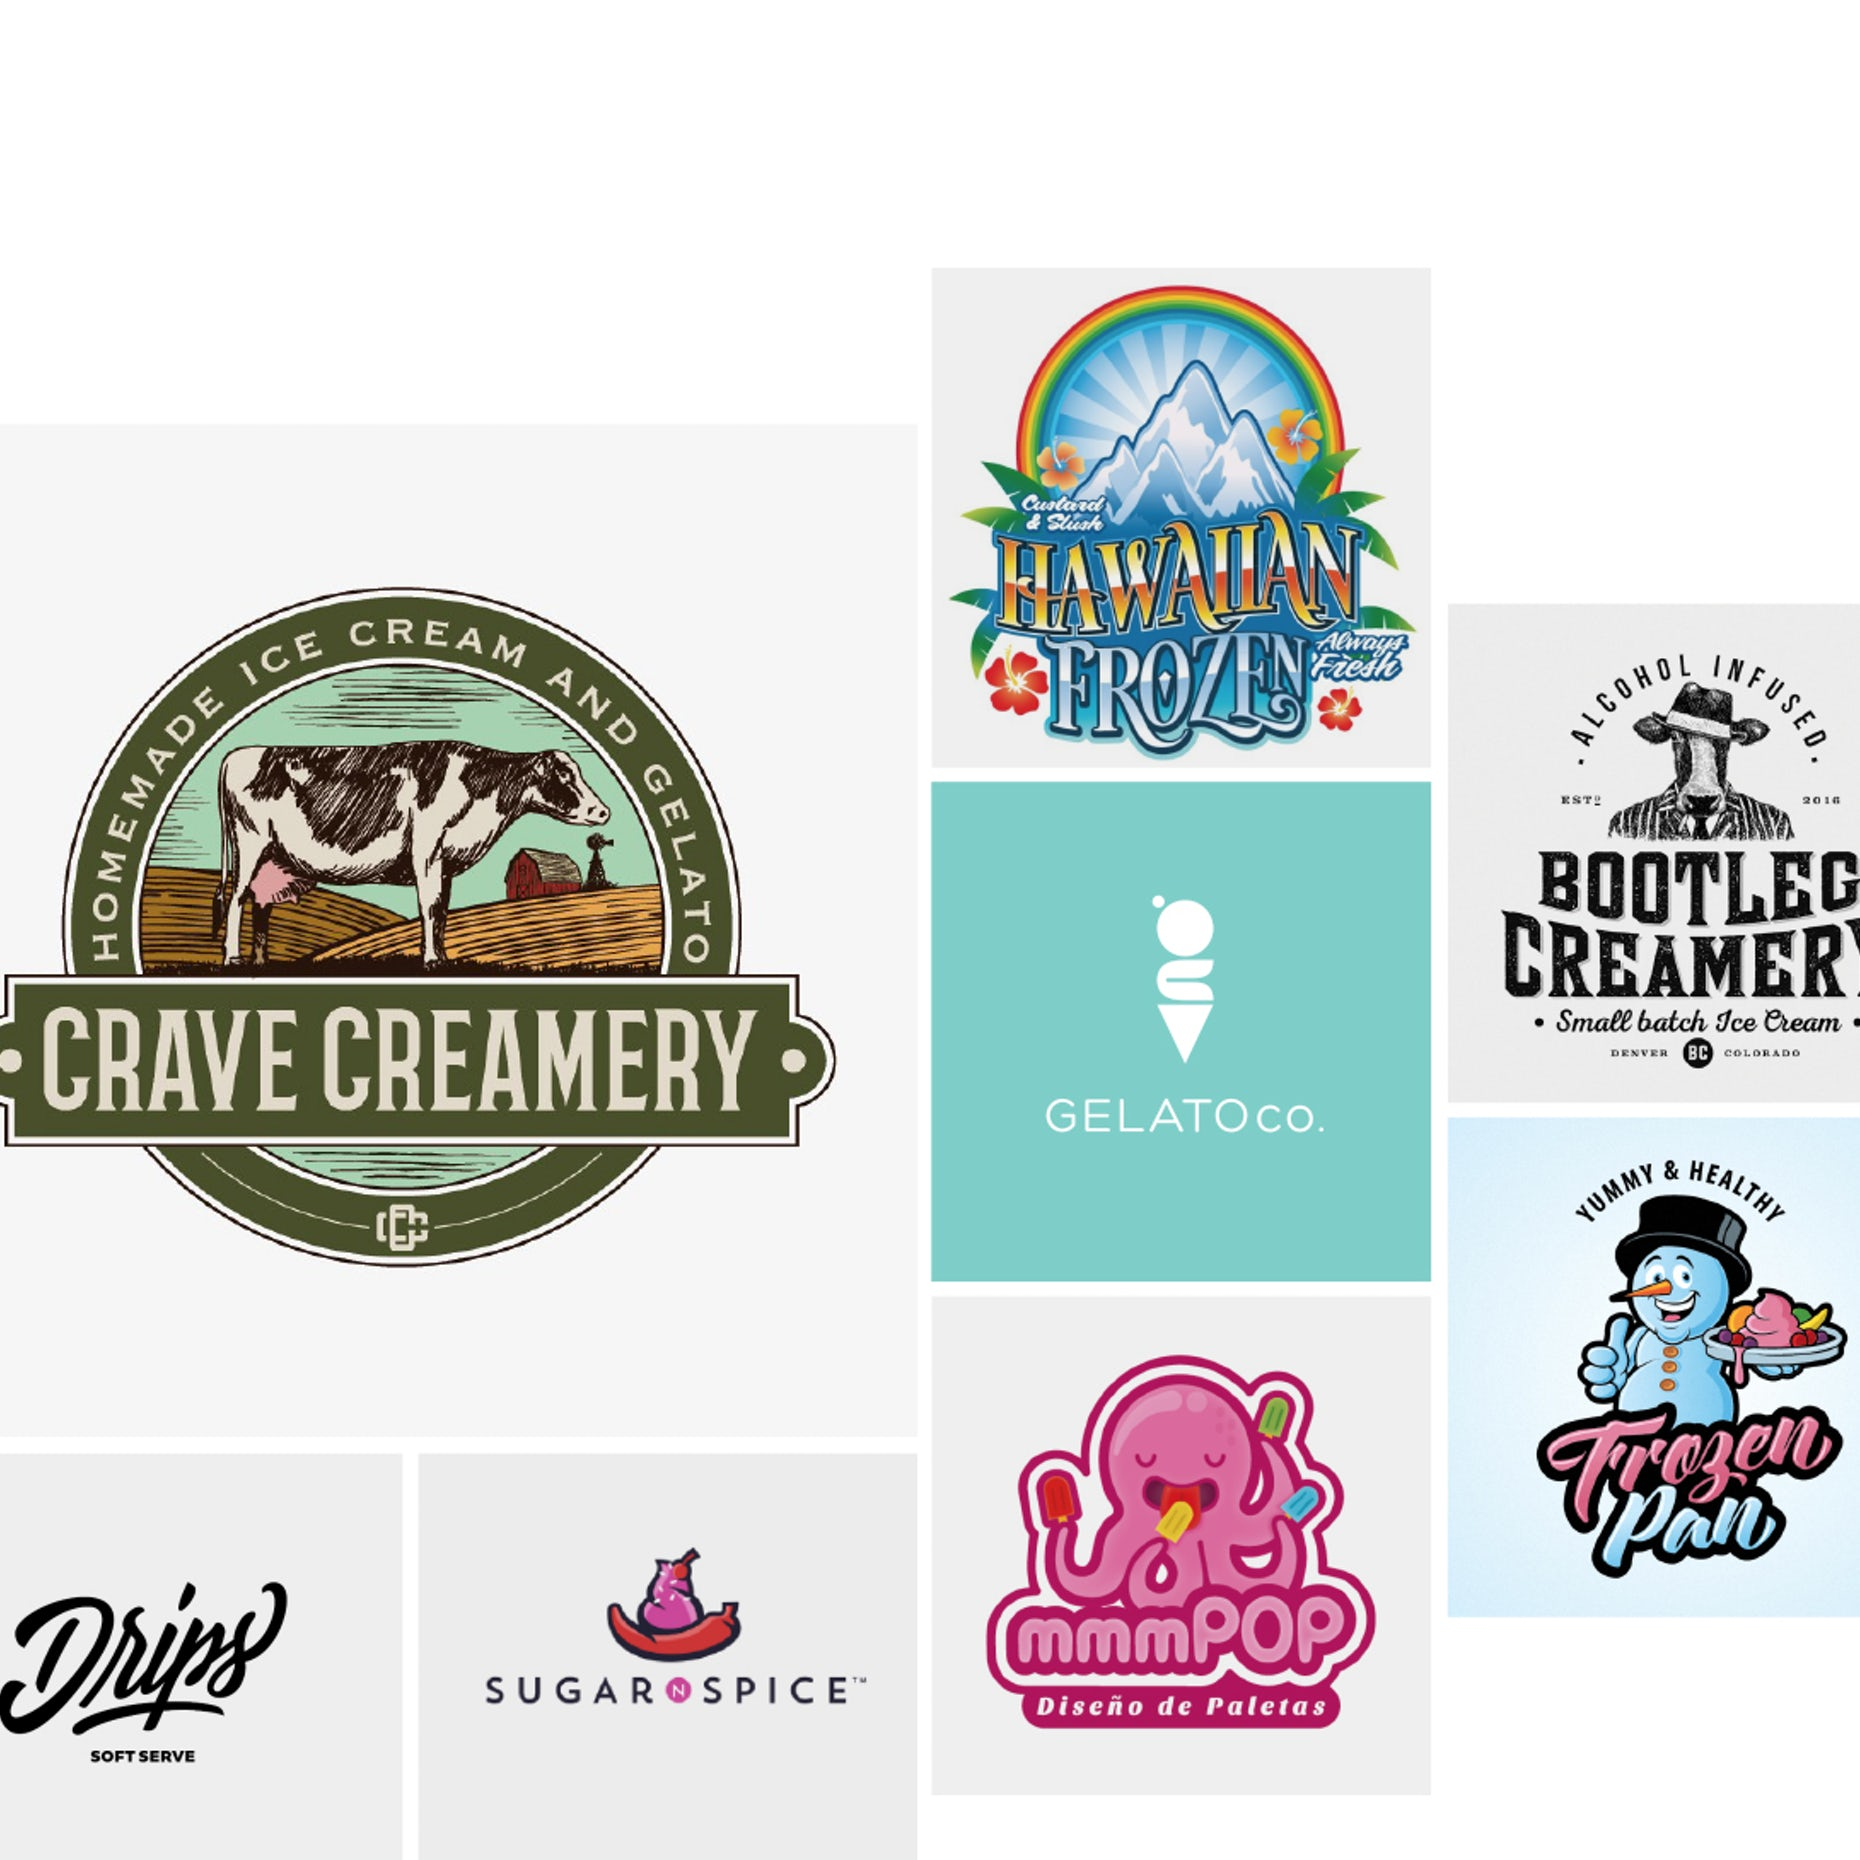 30 ice cream logos that will melt the competition.